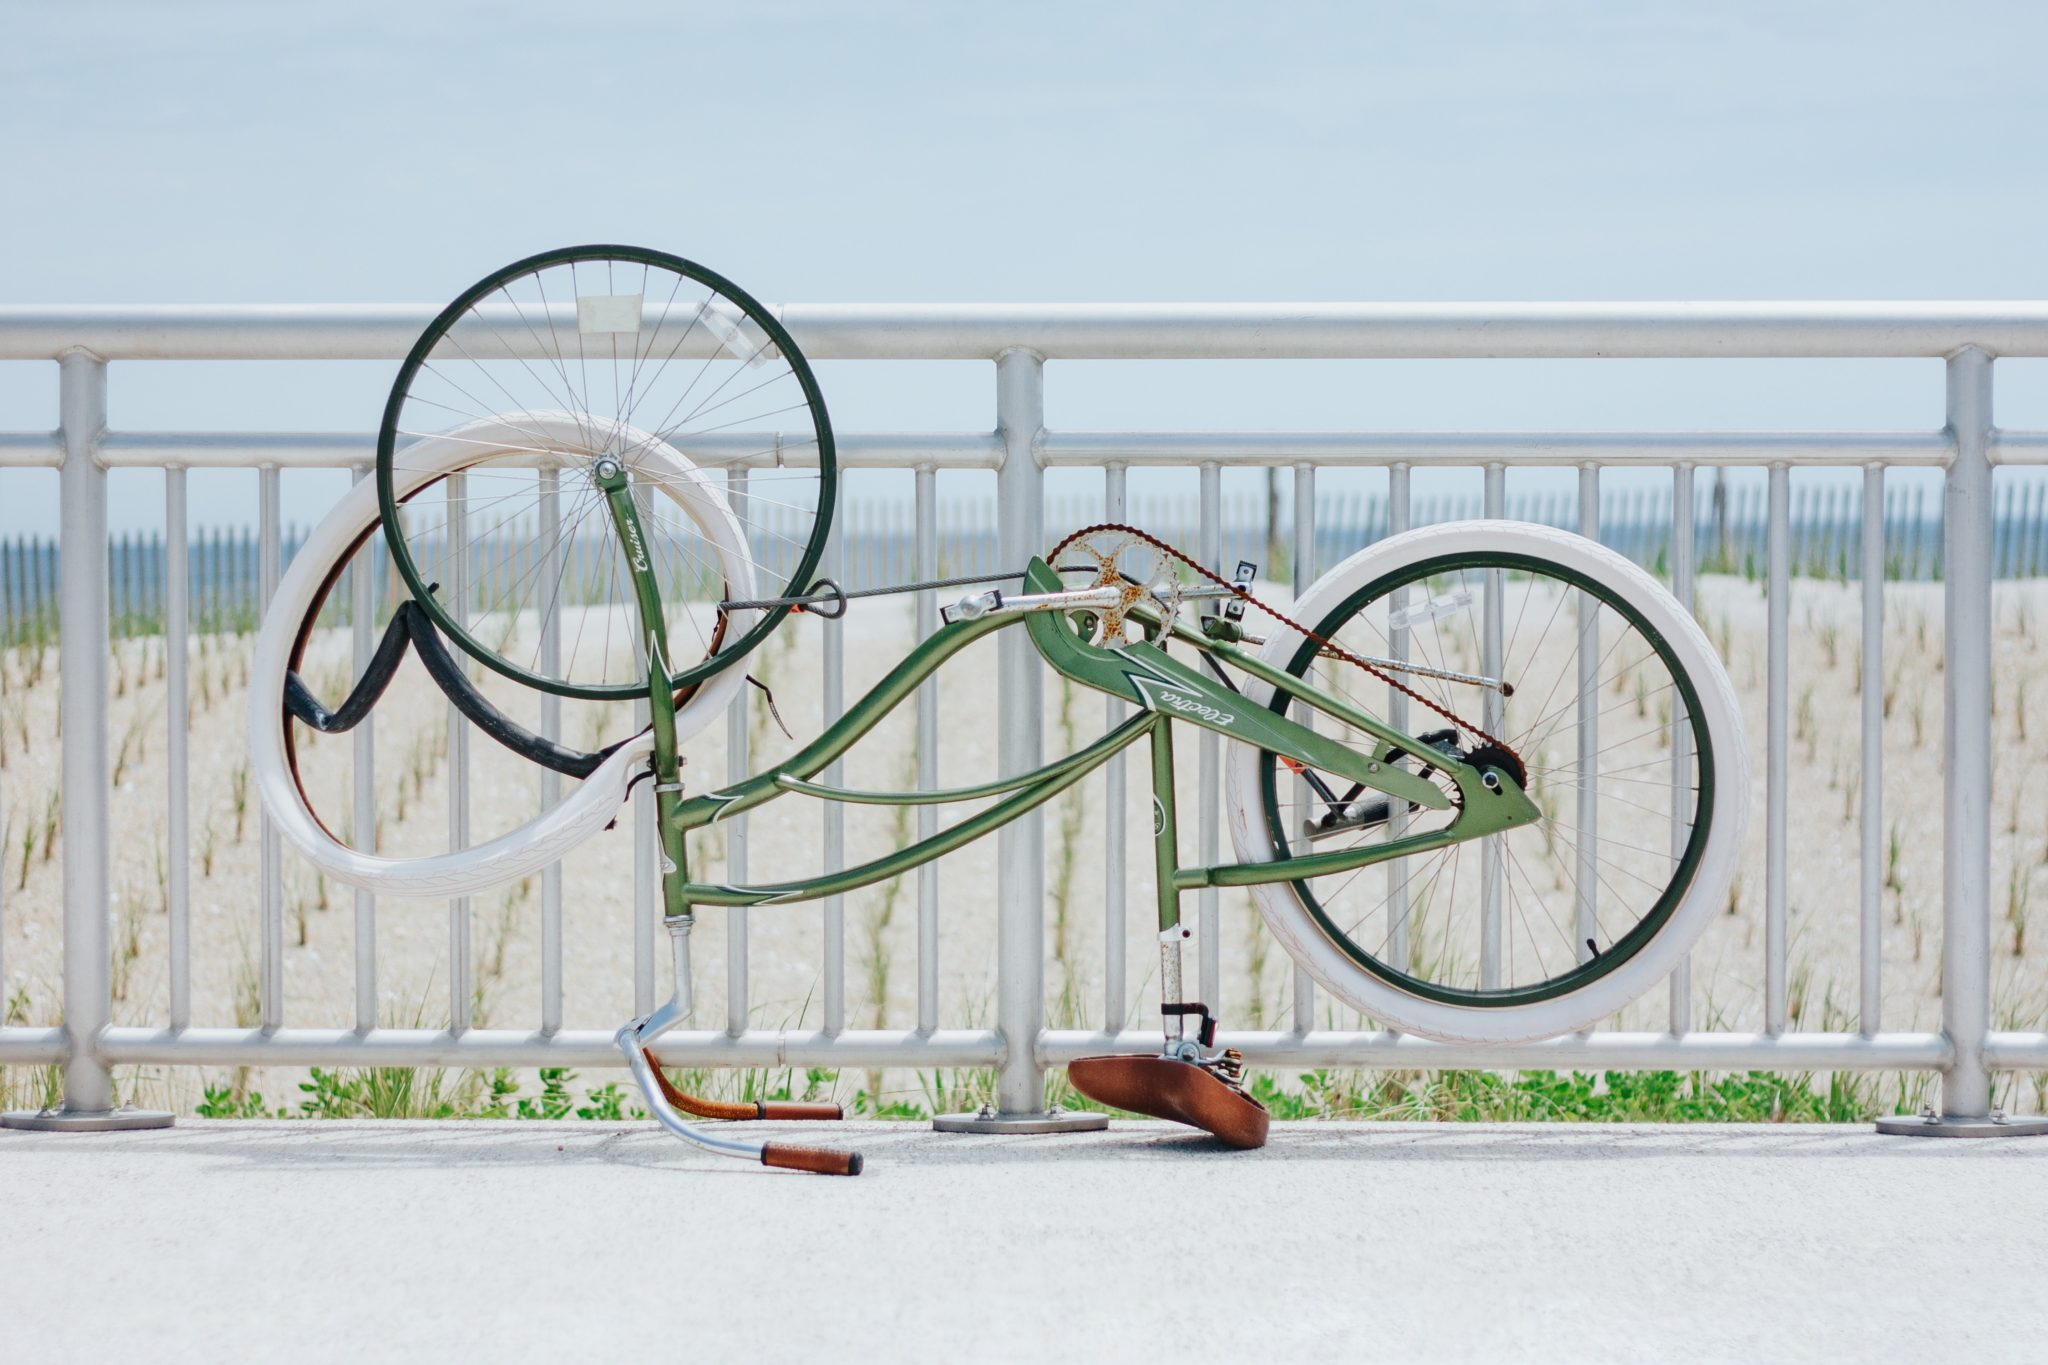 Green bicycle on a beach with flat tire